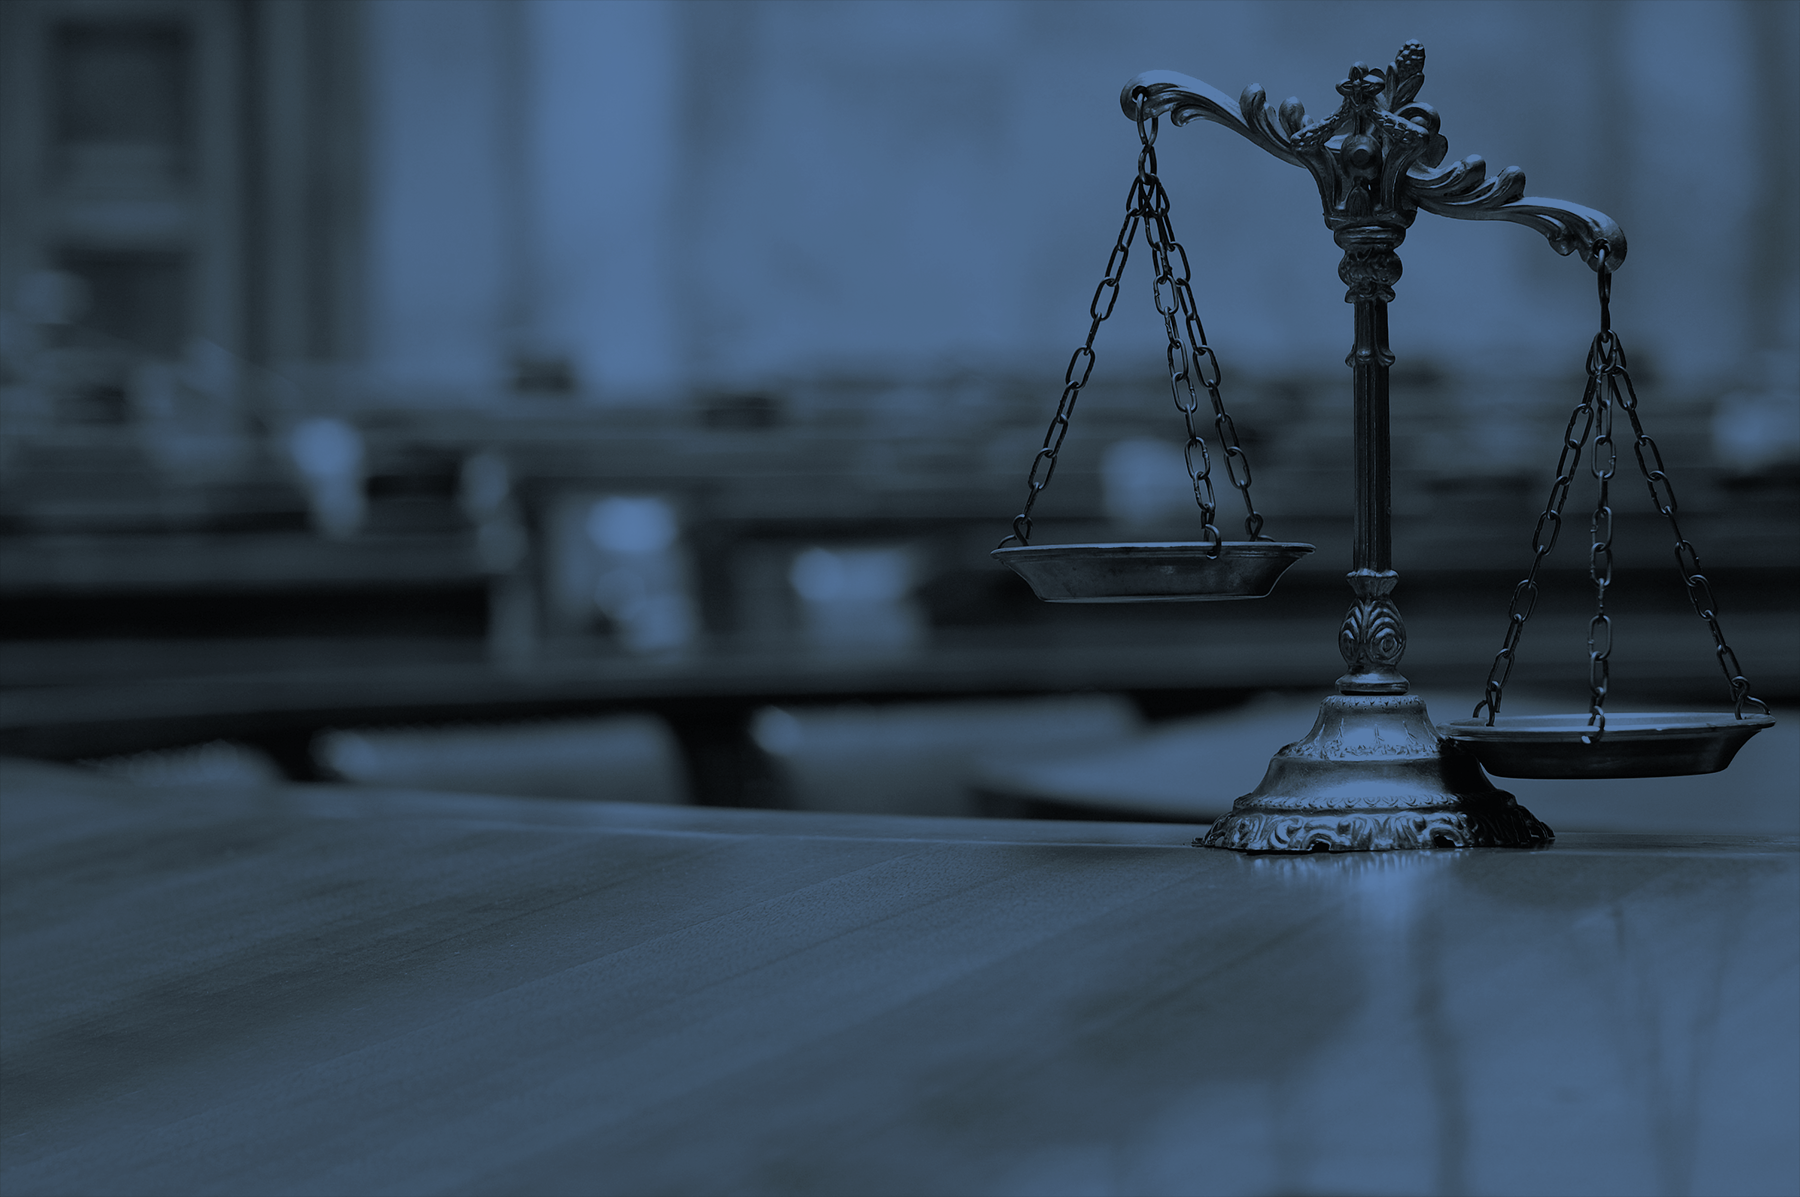 Workers compensation is intended to bring justice for those injured at work. Experienced lawyers know how to maximize what's due you and your family.